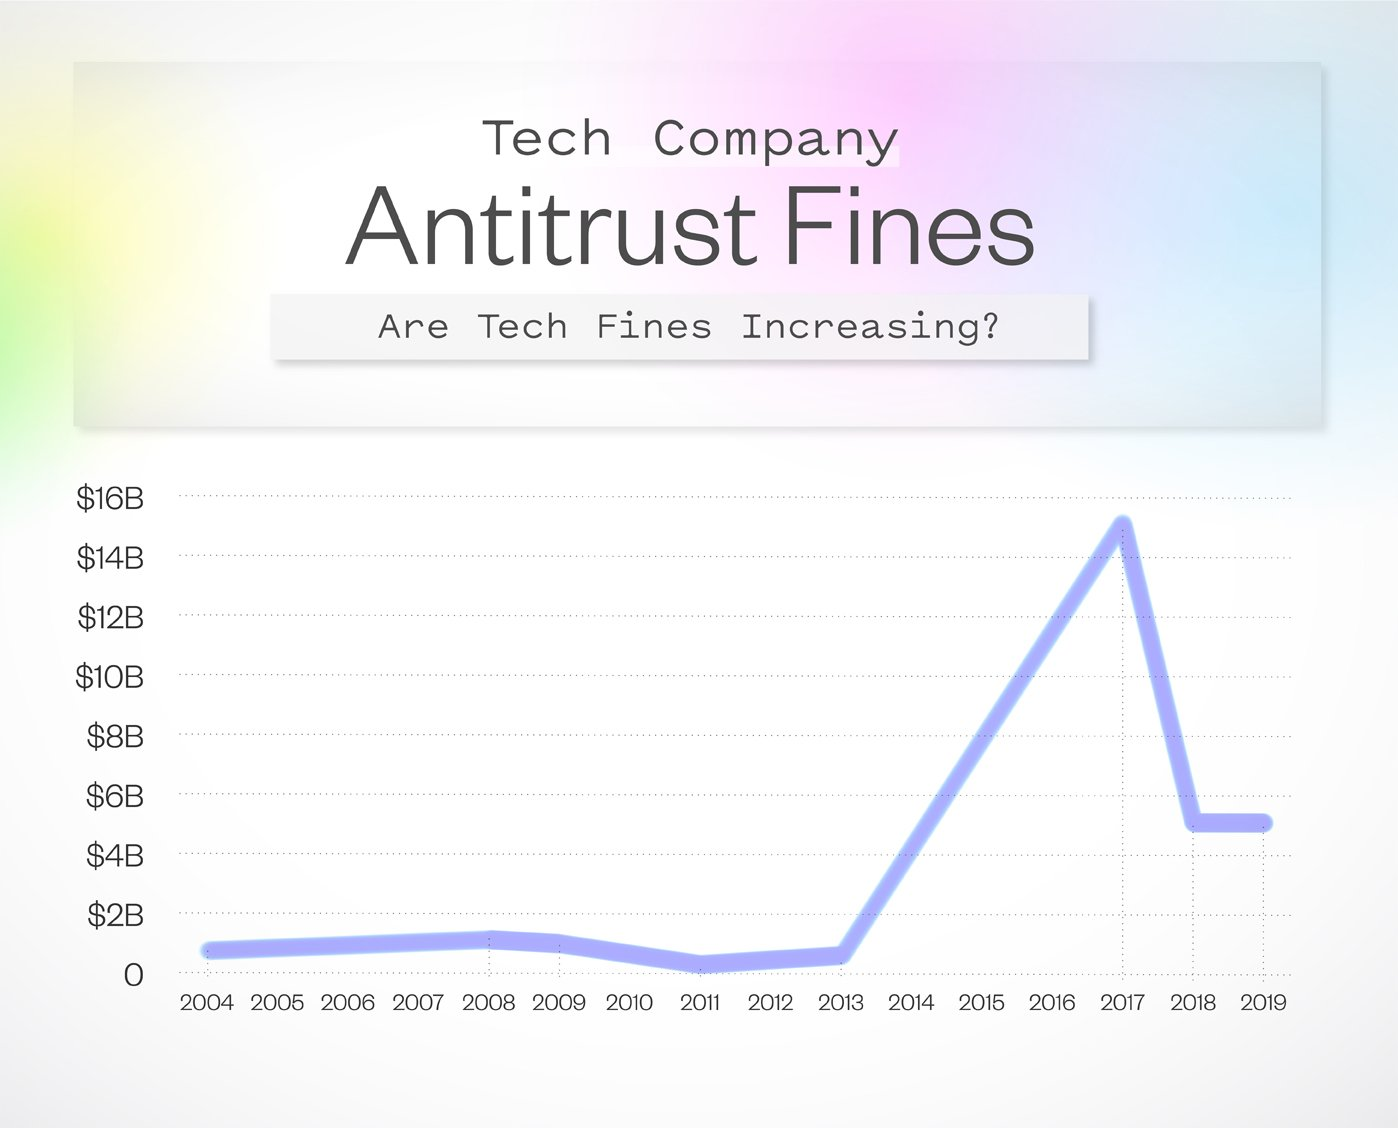 antitrust fines